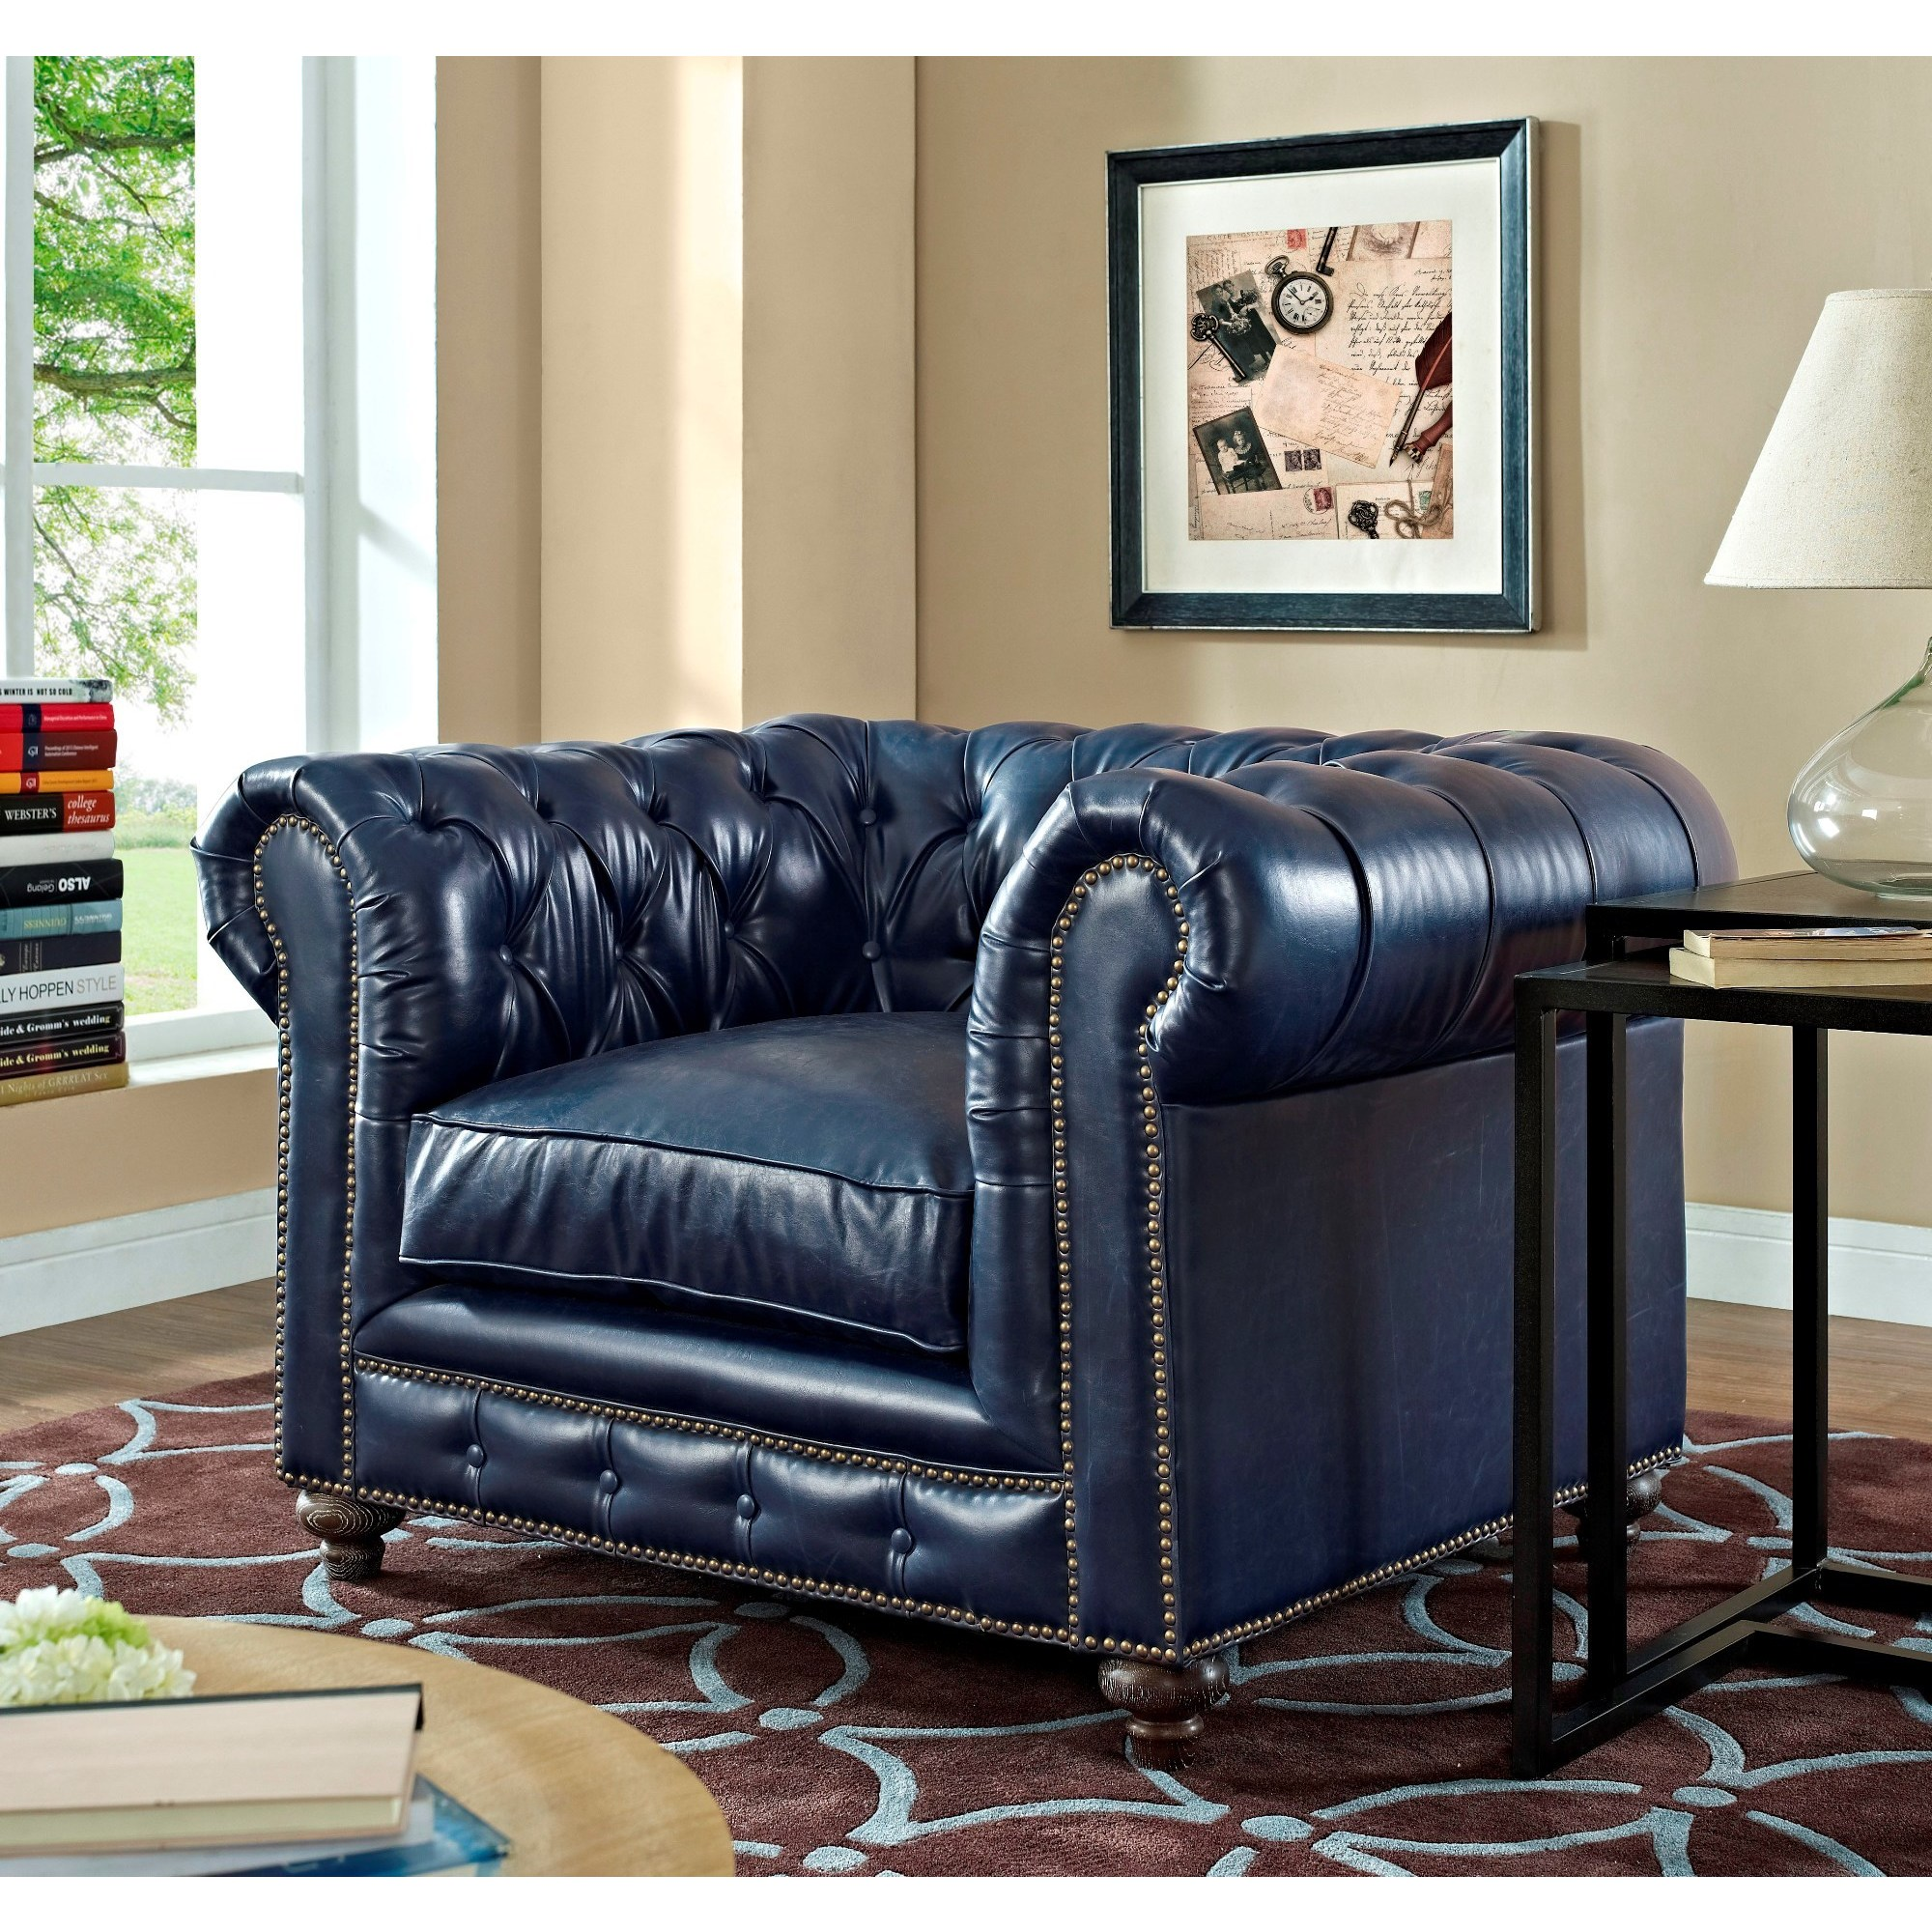 Durango Rustic Blue Leather Living Room Set Free Shipping Today 10156789